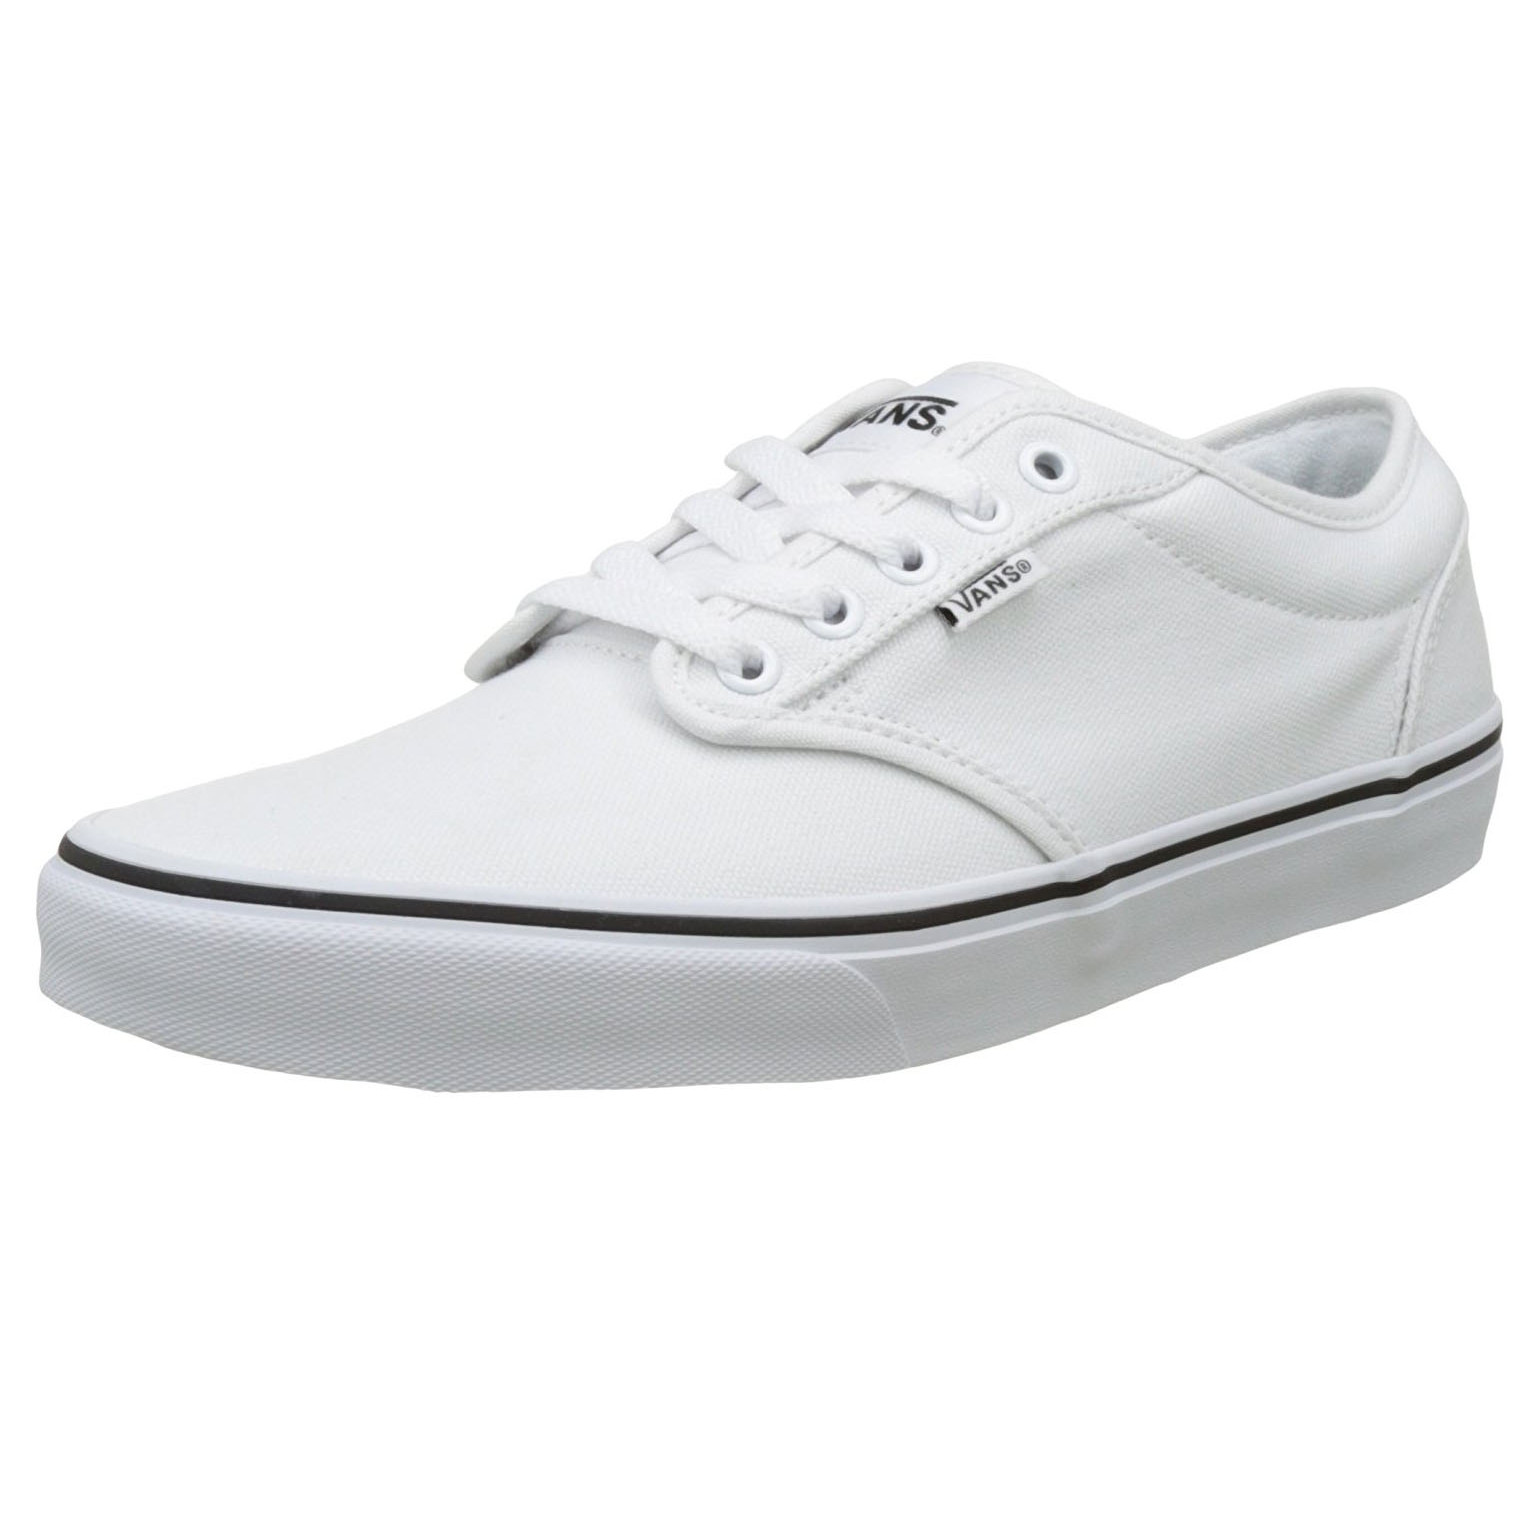 2a293df8e5 Vans Mens Atwood Black Foxing Shoes Trainers White